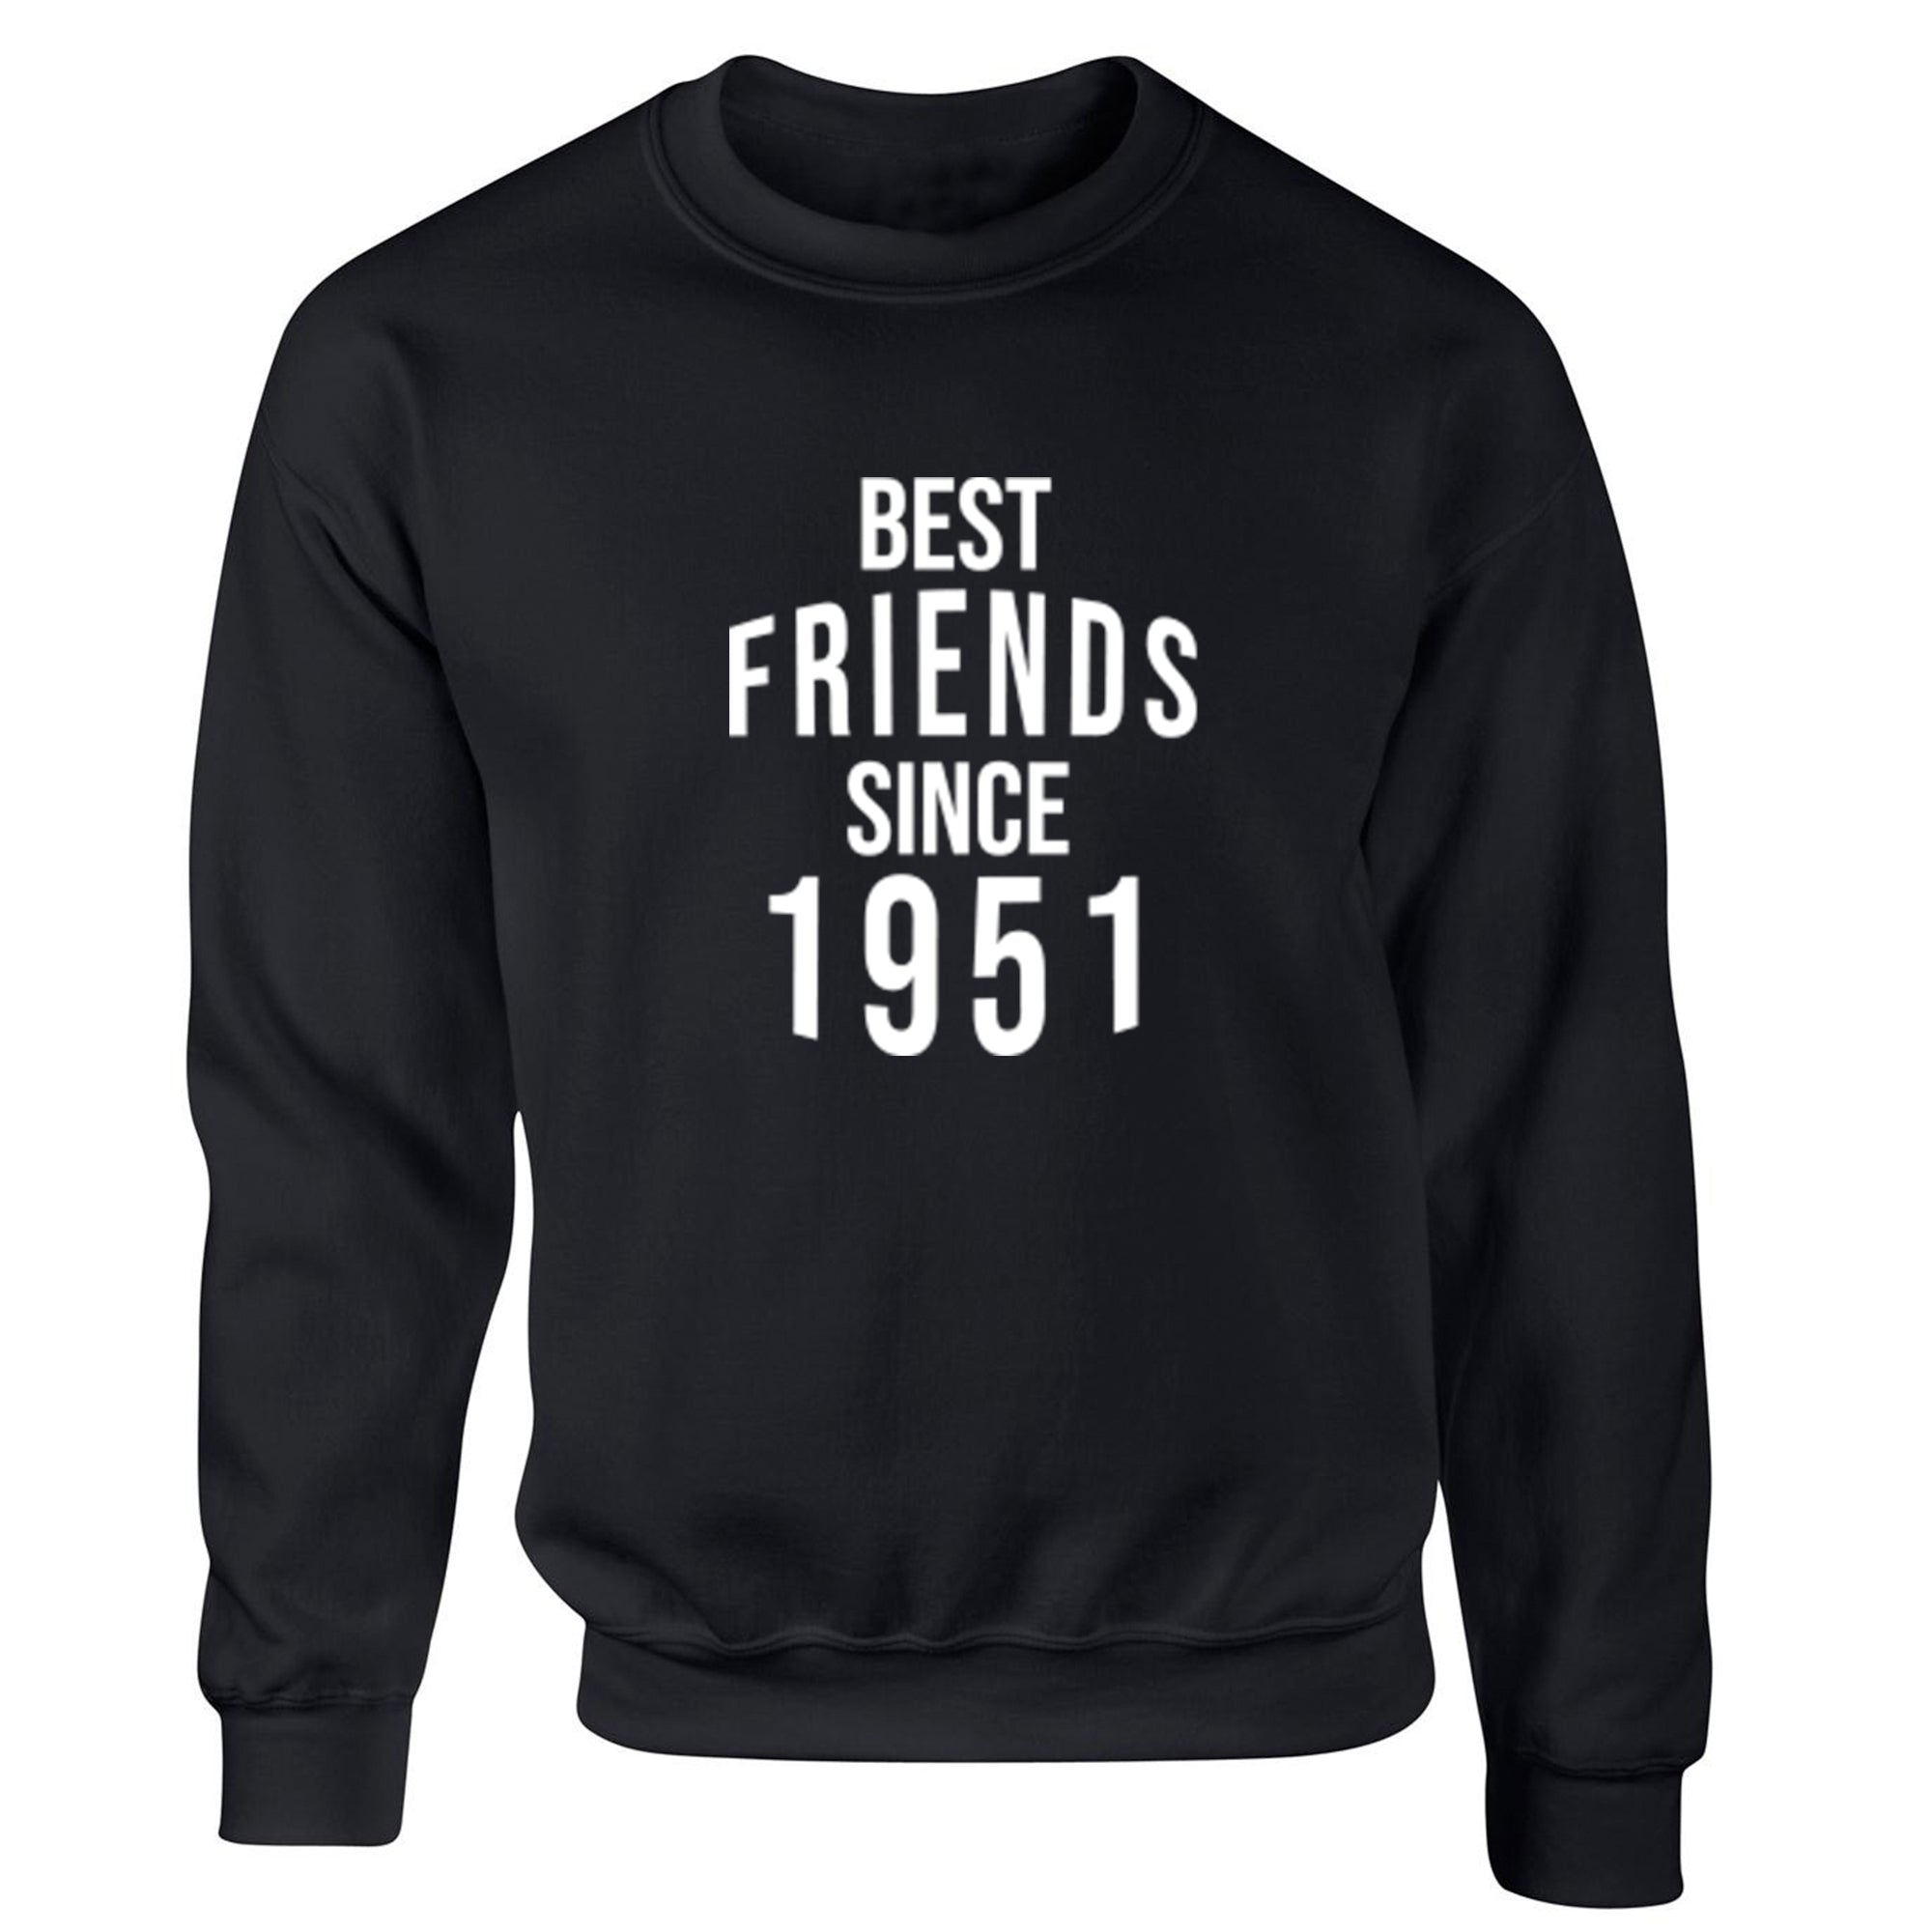 Best Friends Since 1951 Unisex Jumper S0530 - Illustrated Identity Ltd.